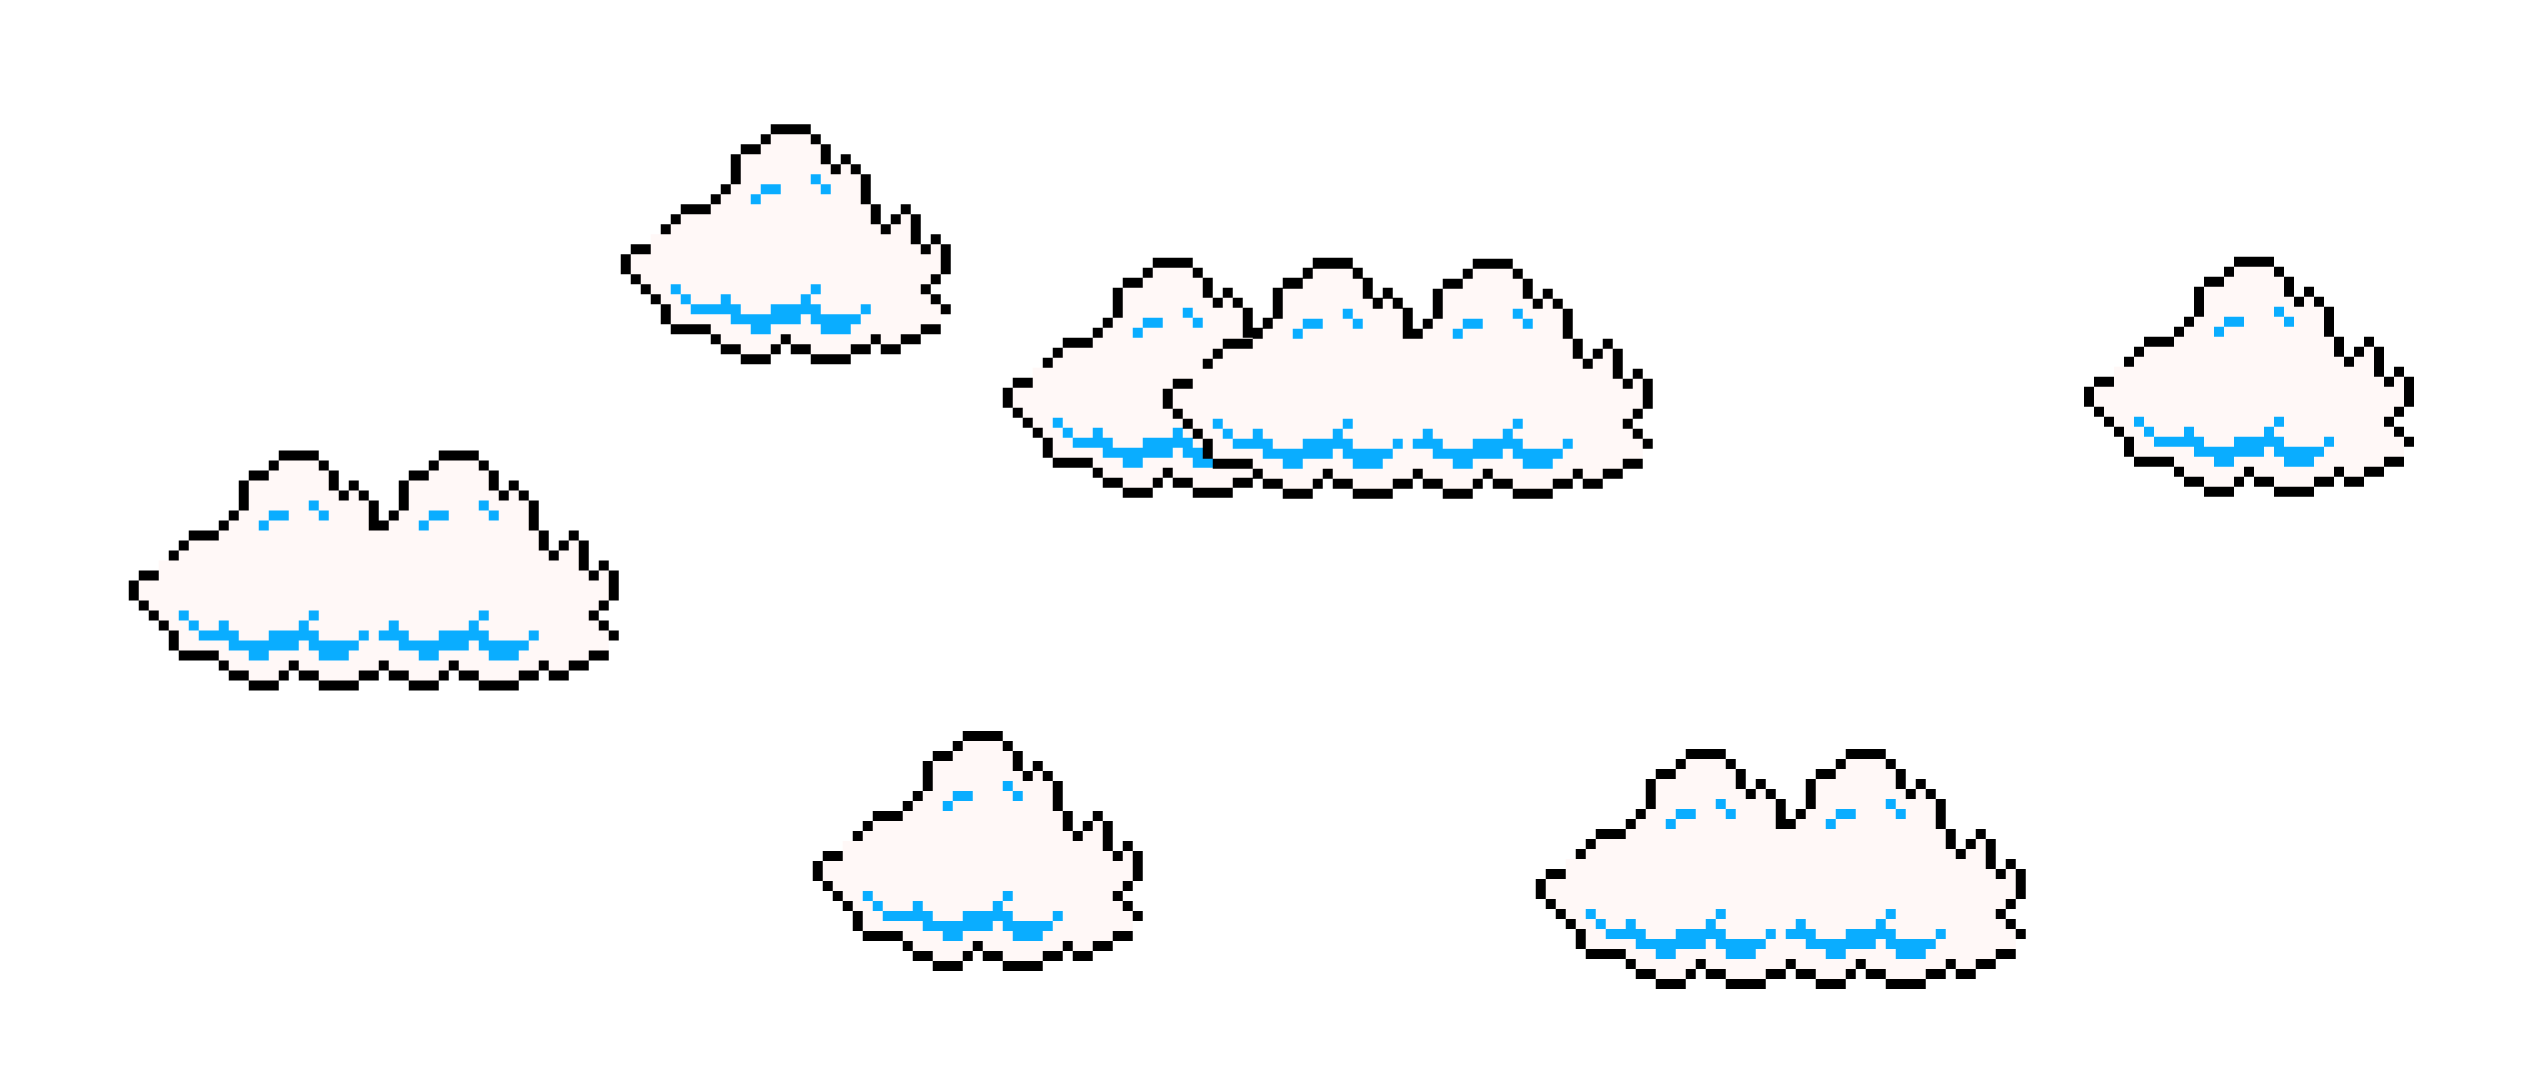 Super mario clouds png. Issue n keen on